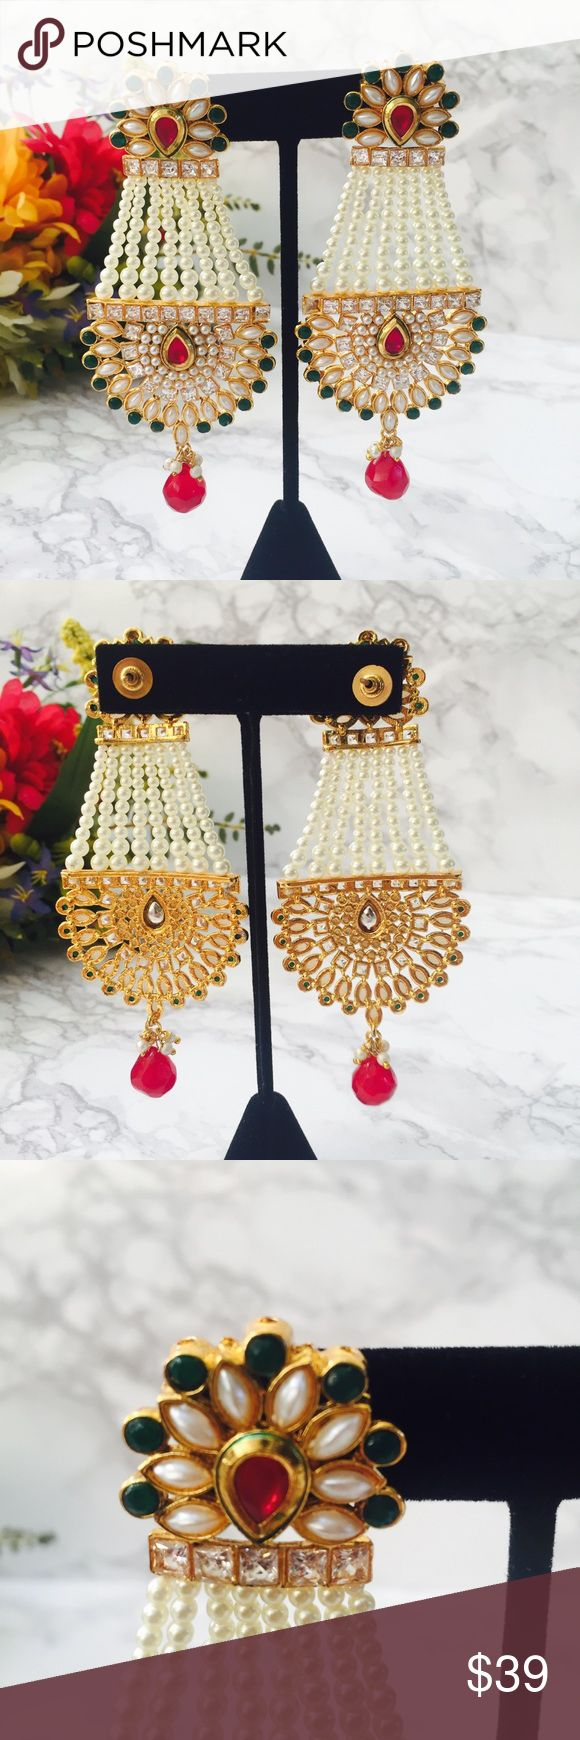 💎 Vintage Indian Earrings 💎 Beautiful long vintage earrings. Inspired by traditional Indian jewelry. Unique and elegant design perfect for any special occasion such as weddings or birthday parties.  Tags: Indian Pakistani pearls green red rhinestones gold vintage Christmas present Bollywood fancy prom formal  *unfortunately there is a missing stone on one of the earrings as shown in the first picture Jewelry Earrings